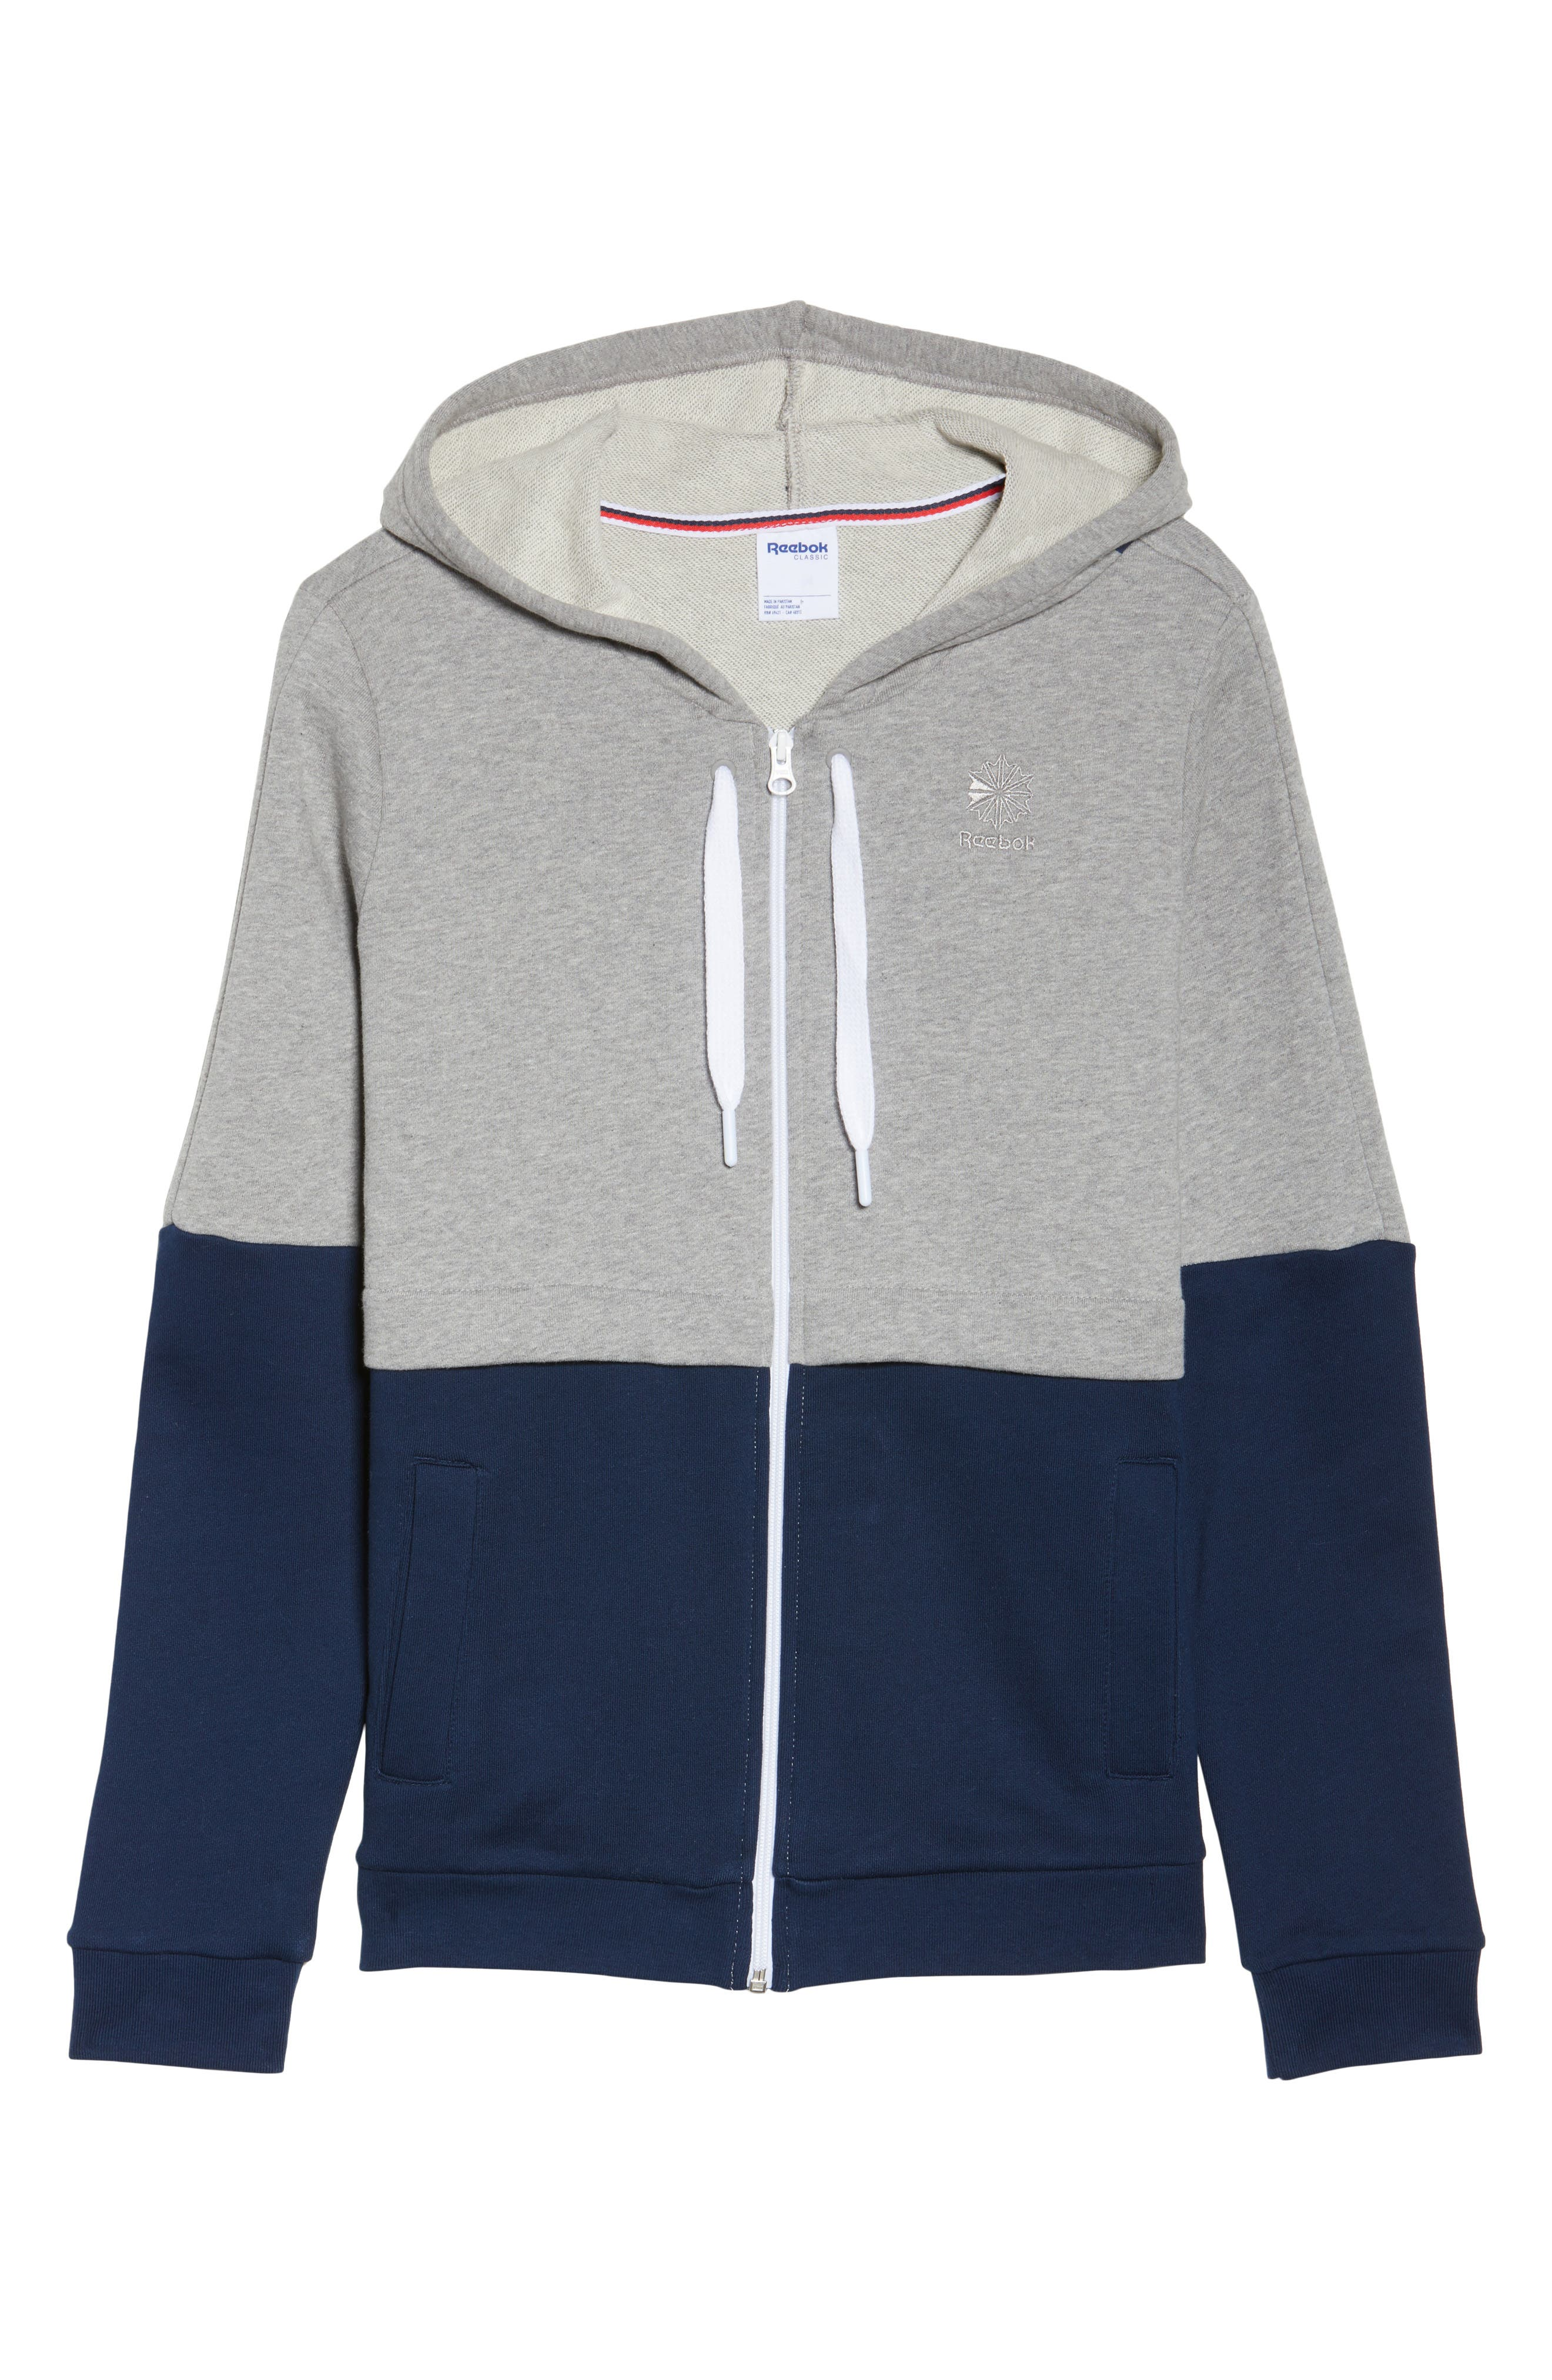 Classics French Terry Zip Hoodie,                             Alternate thumbnail 7, color,                             065